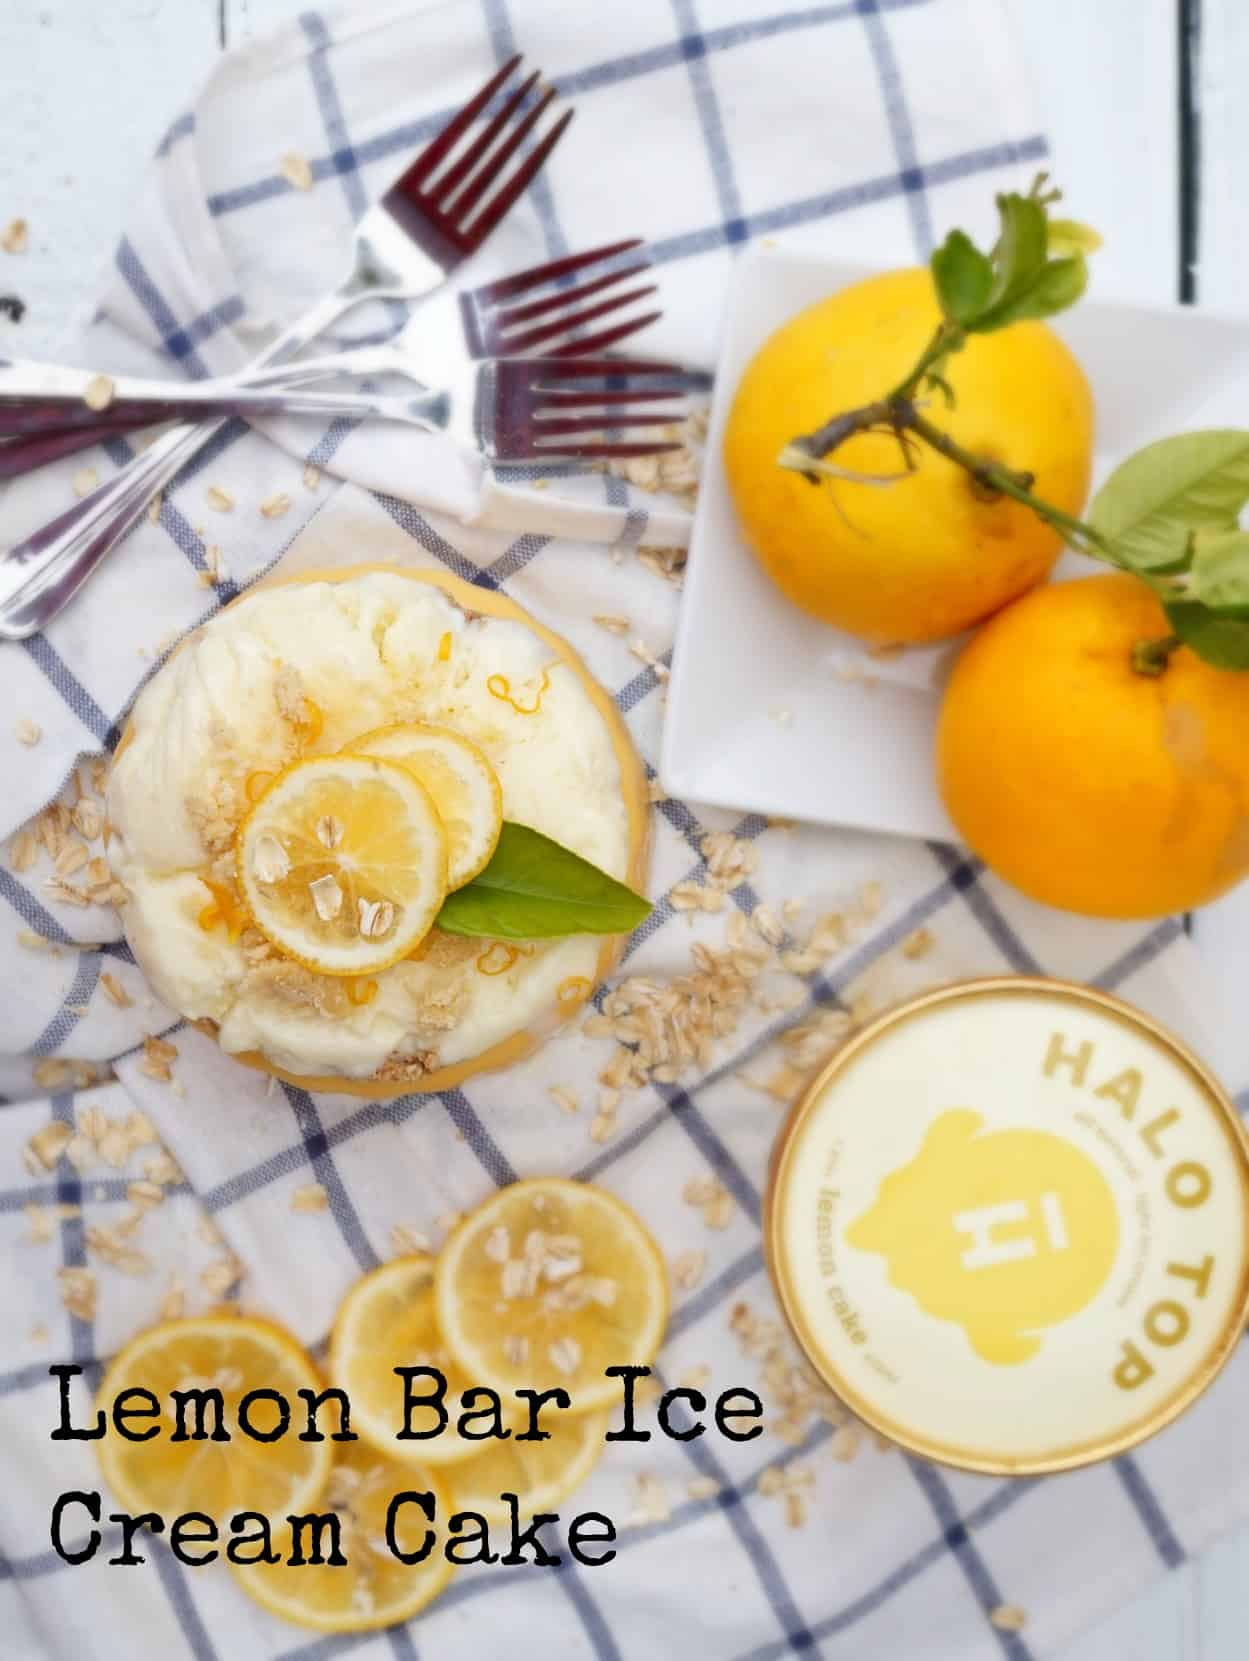 Lemon Bar Ice Cream Cake Shaws Simple Swaps 2